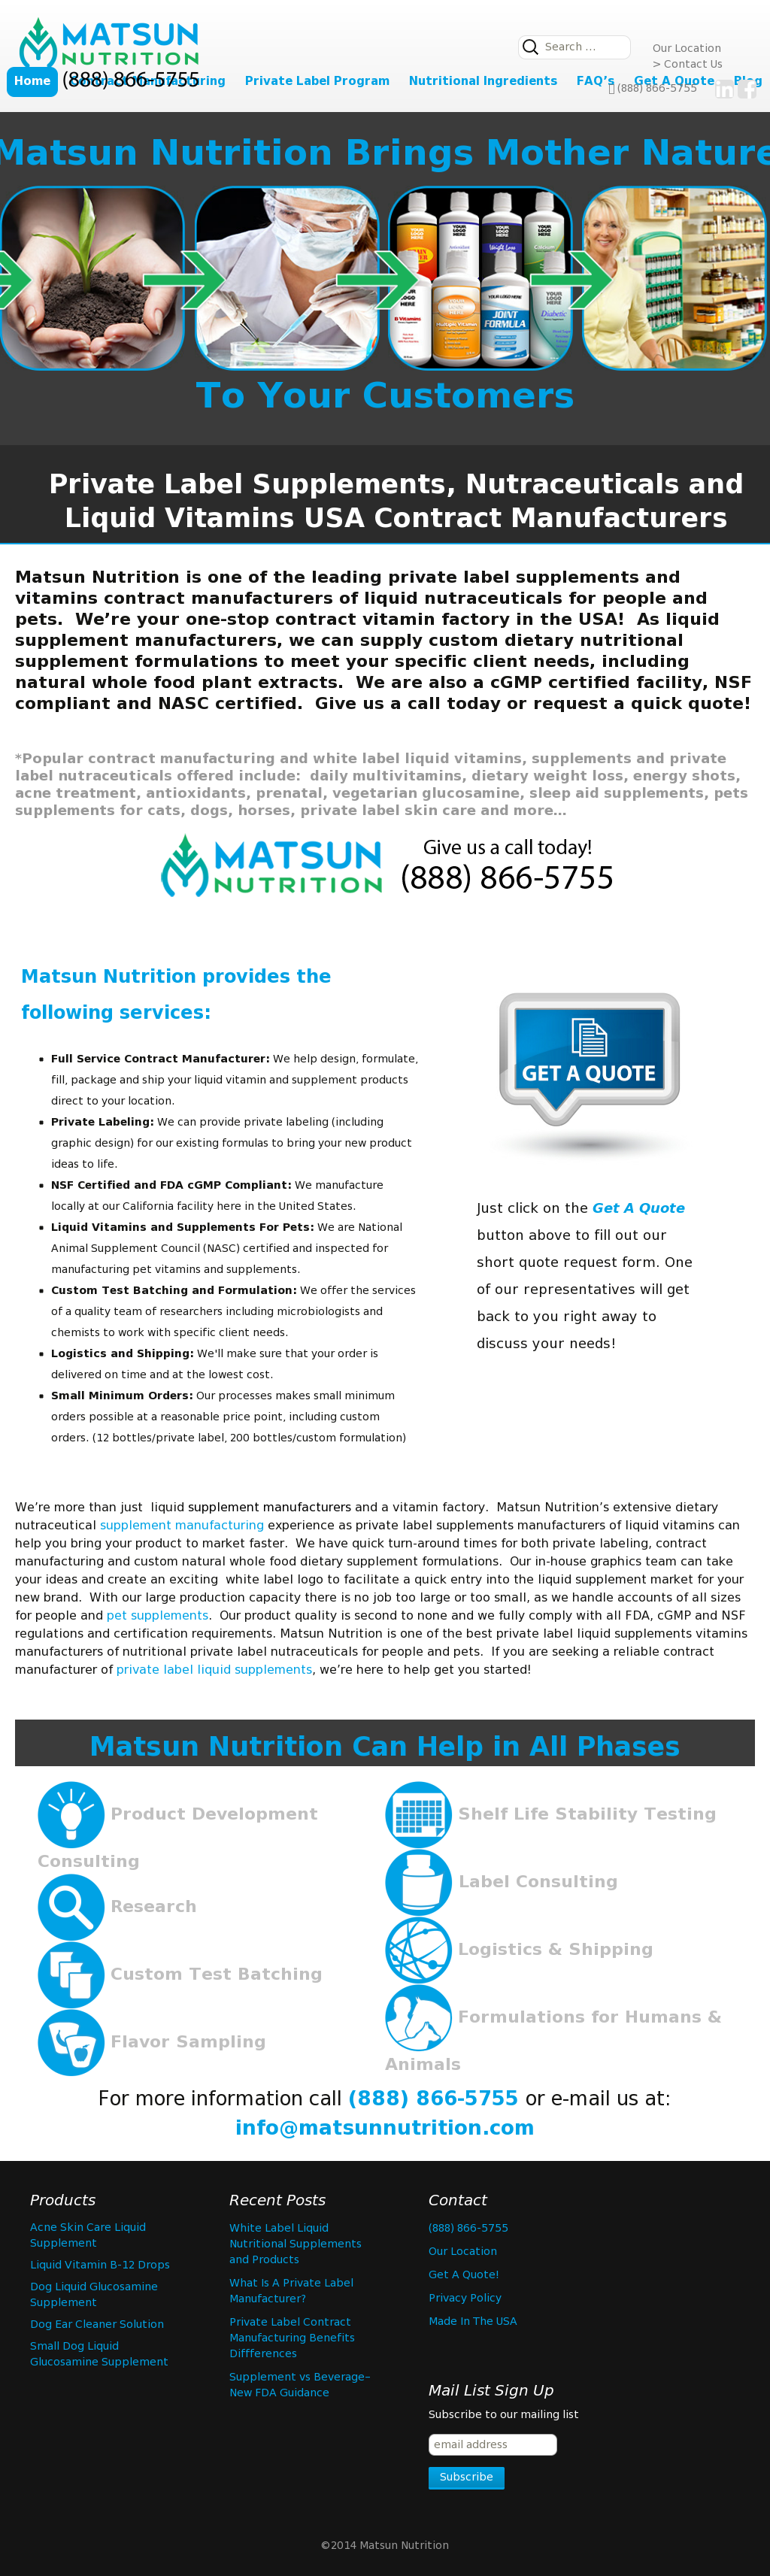 Matsun Nutrition Competitors, Revenue and Employees - Owler Company